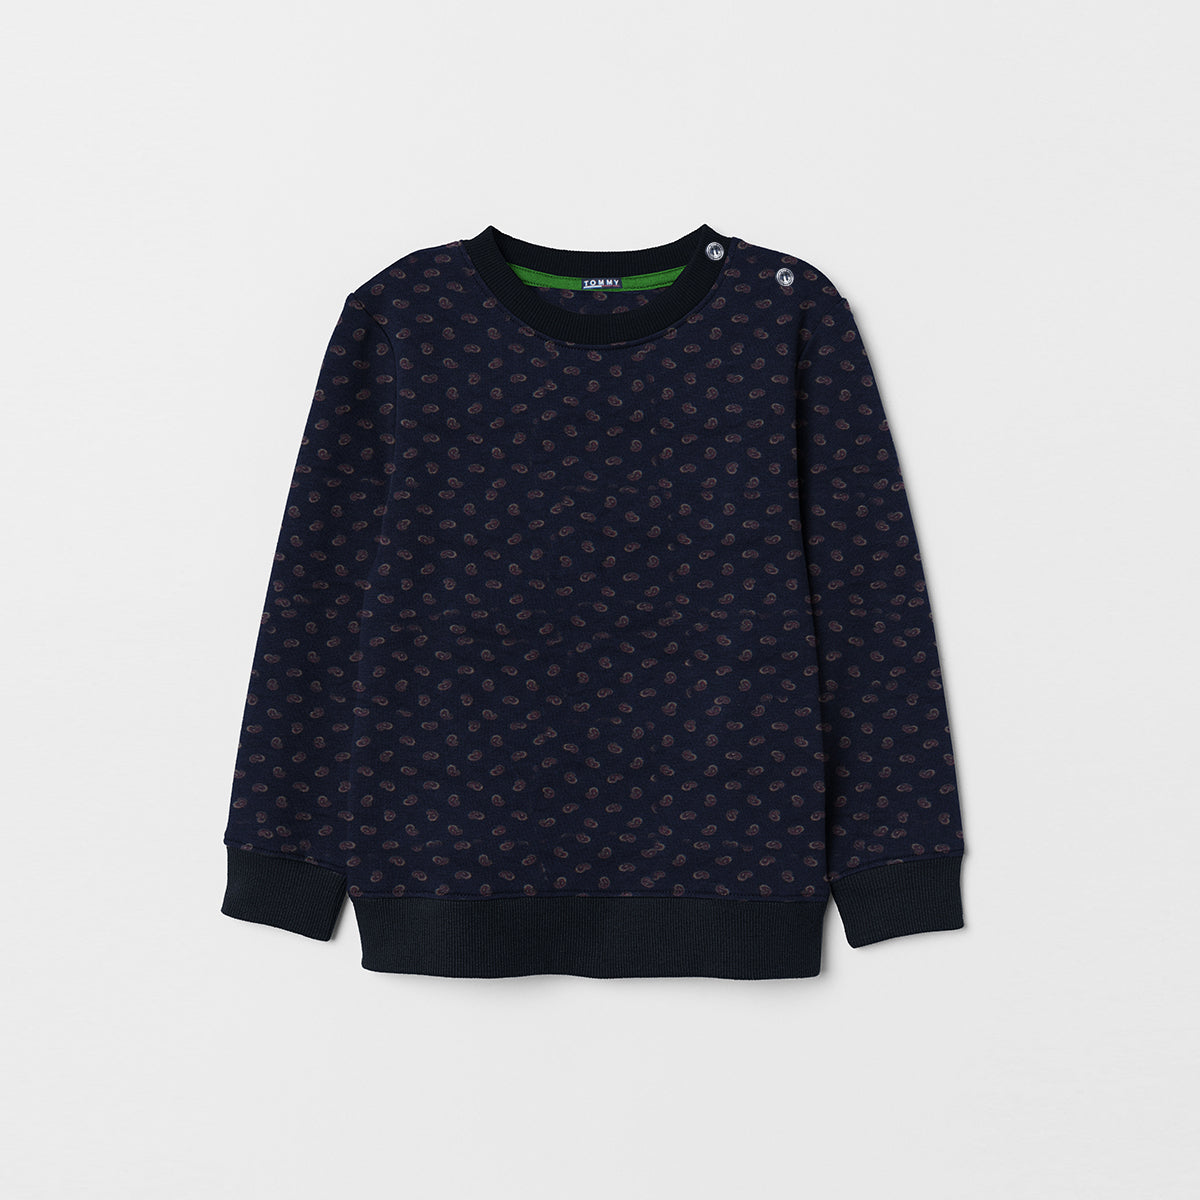 Tommy Hilfiger Crew Neck Single Jersey Sweatshirt For Kids-All Over Printed-NA7547